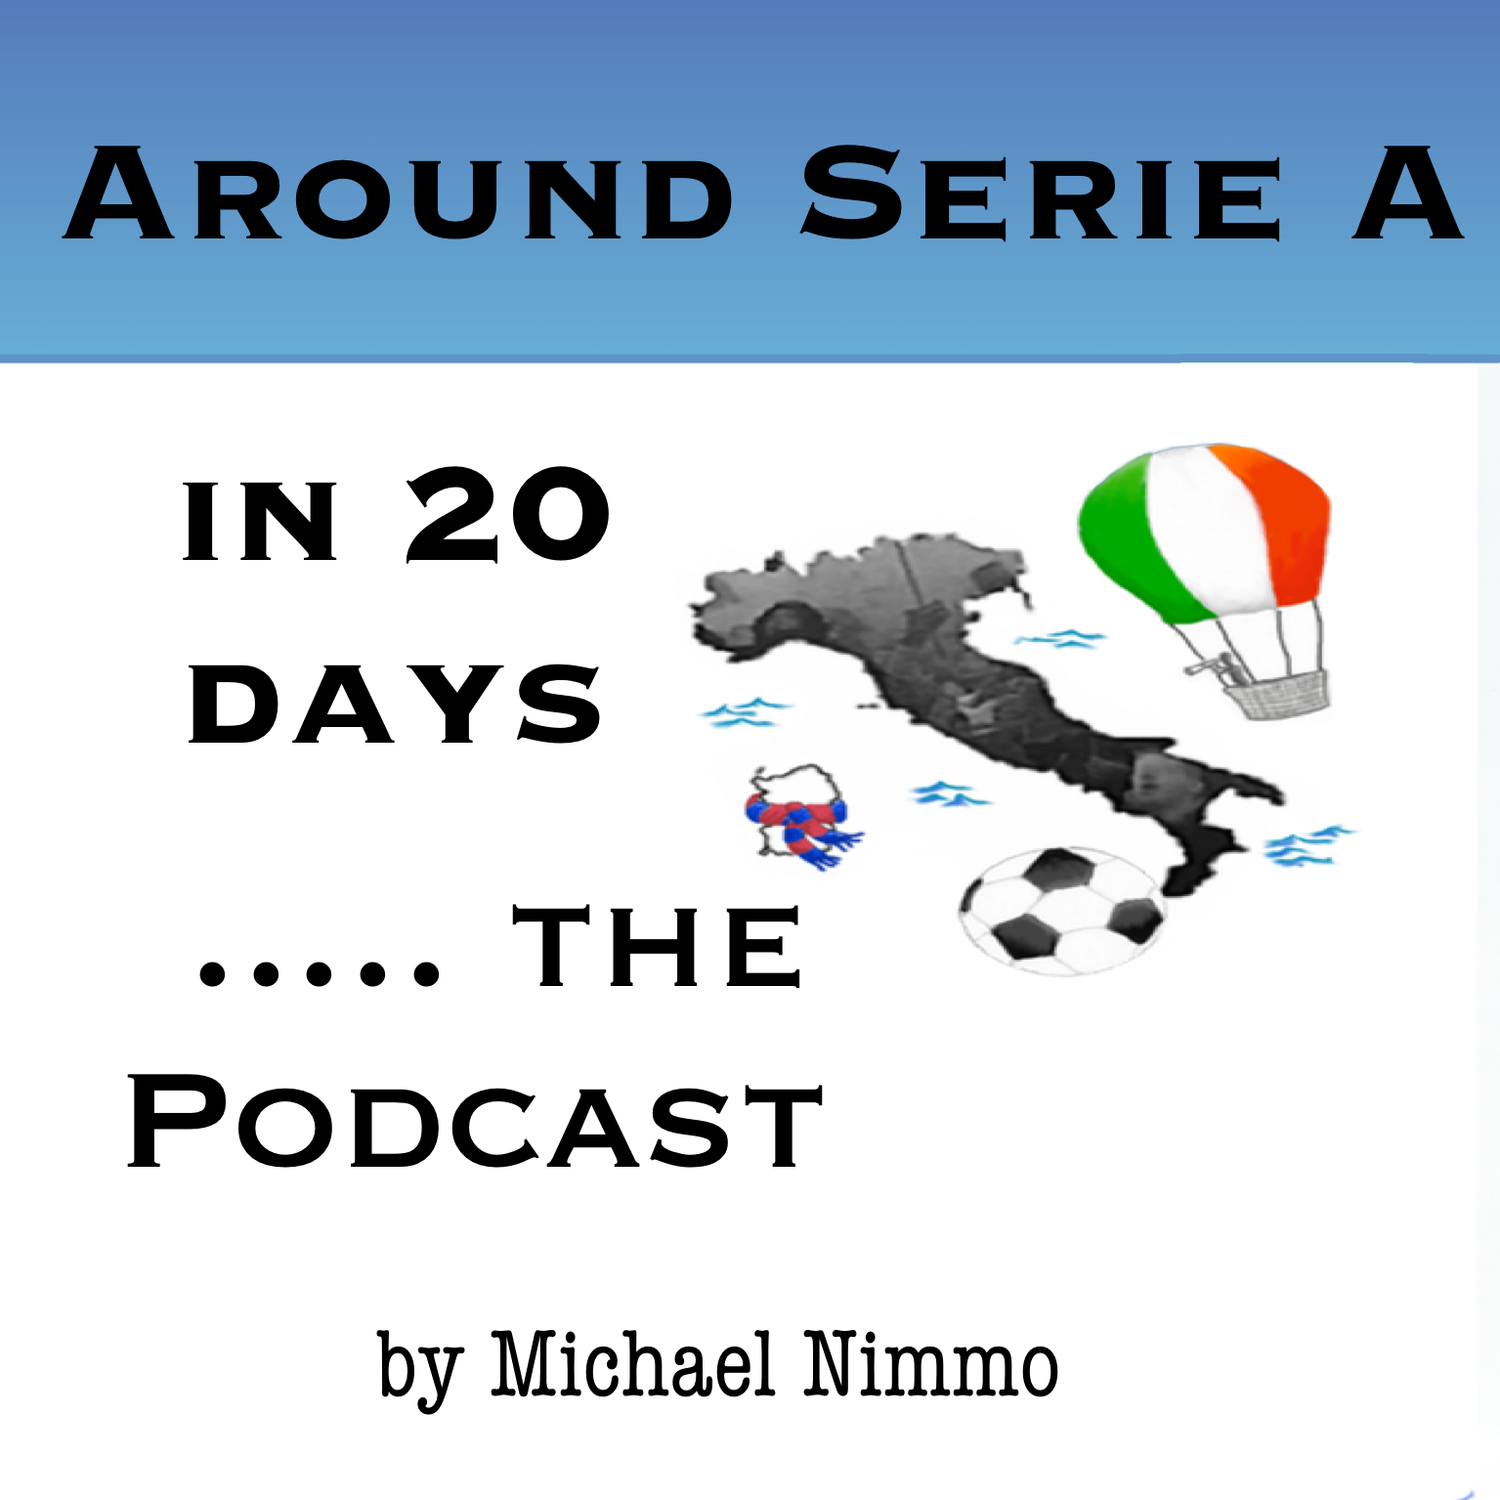 Around Serie A in 20 Days.... The Podcast - Michael Nimmo